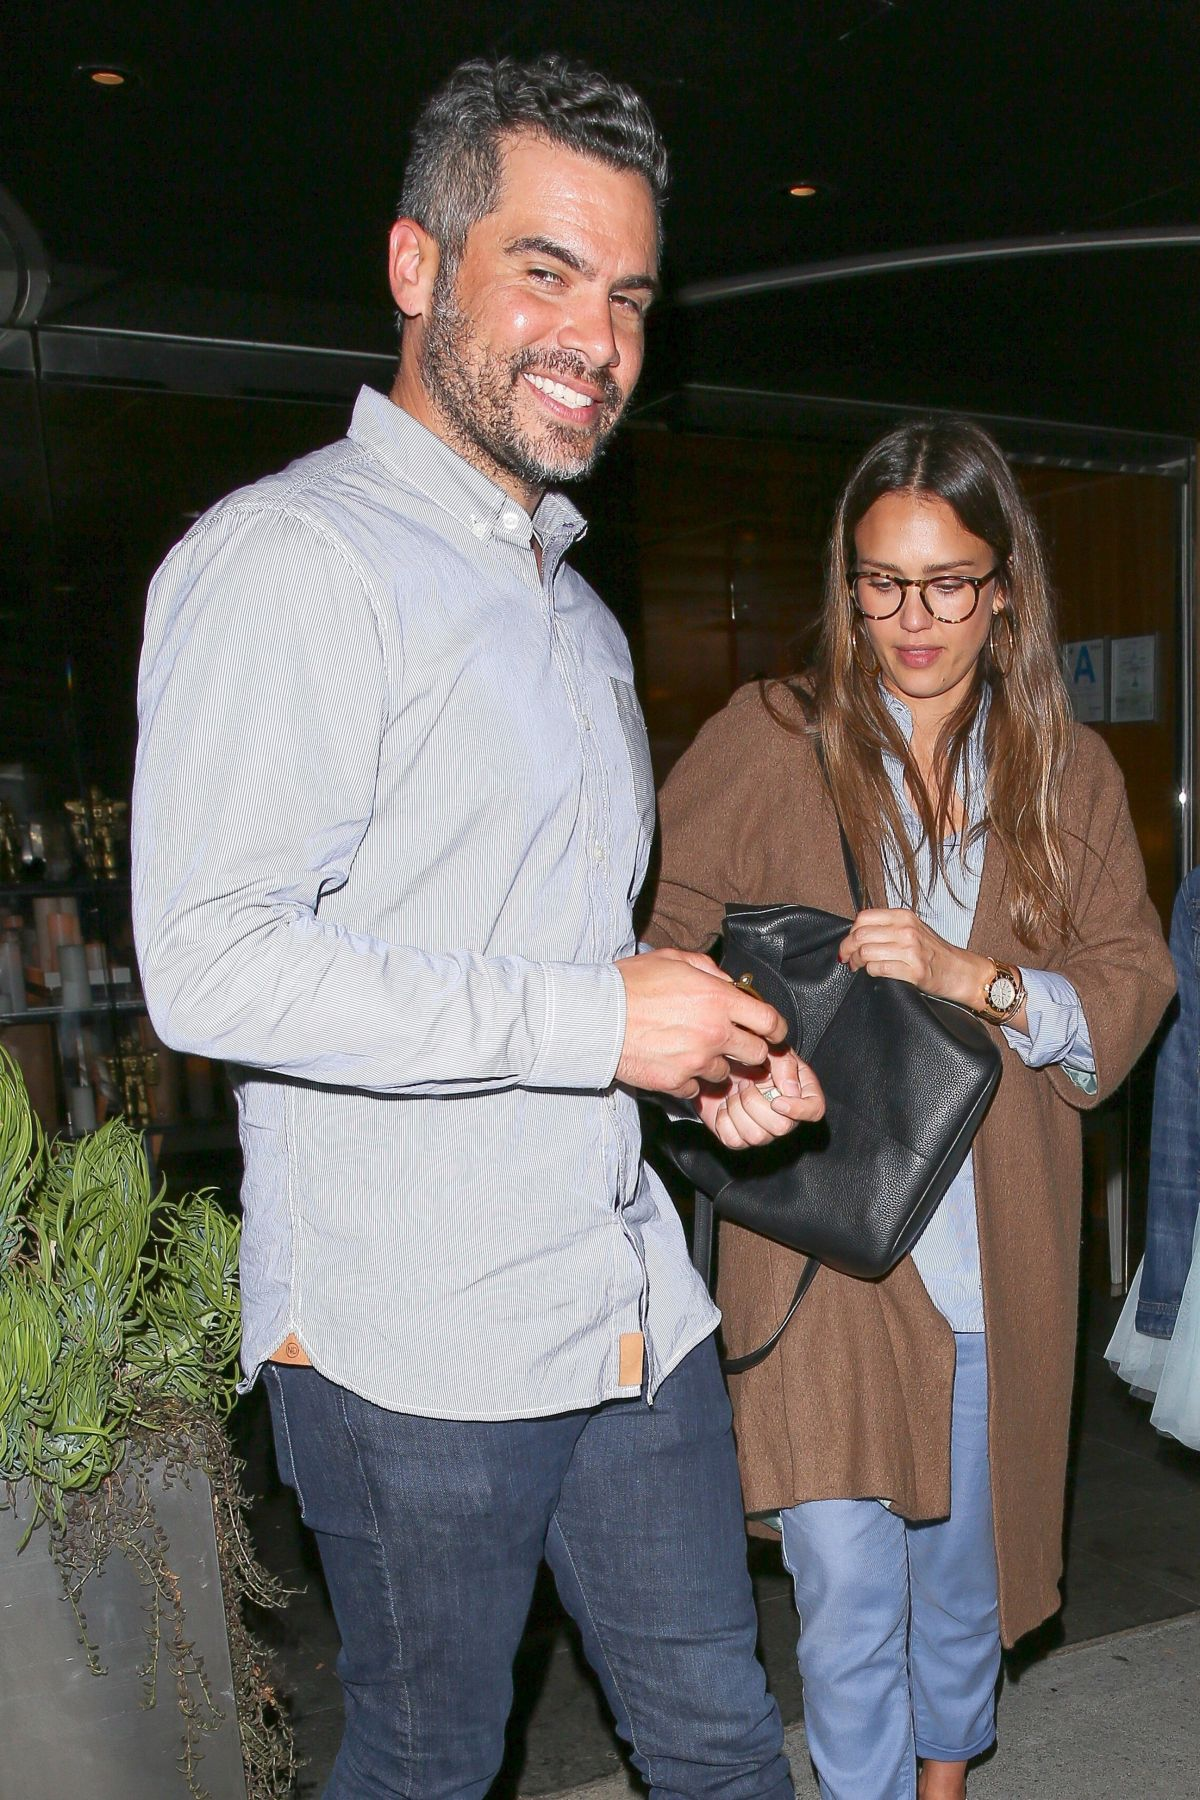 http://www.hawtcelebs.com/wp-content/uploads/2017/06/jessica-alba-leaves-katsuya-restaurant-in-hollywood-06-07-2017_6.jpg